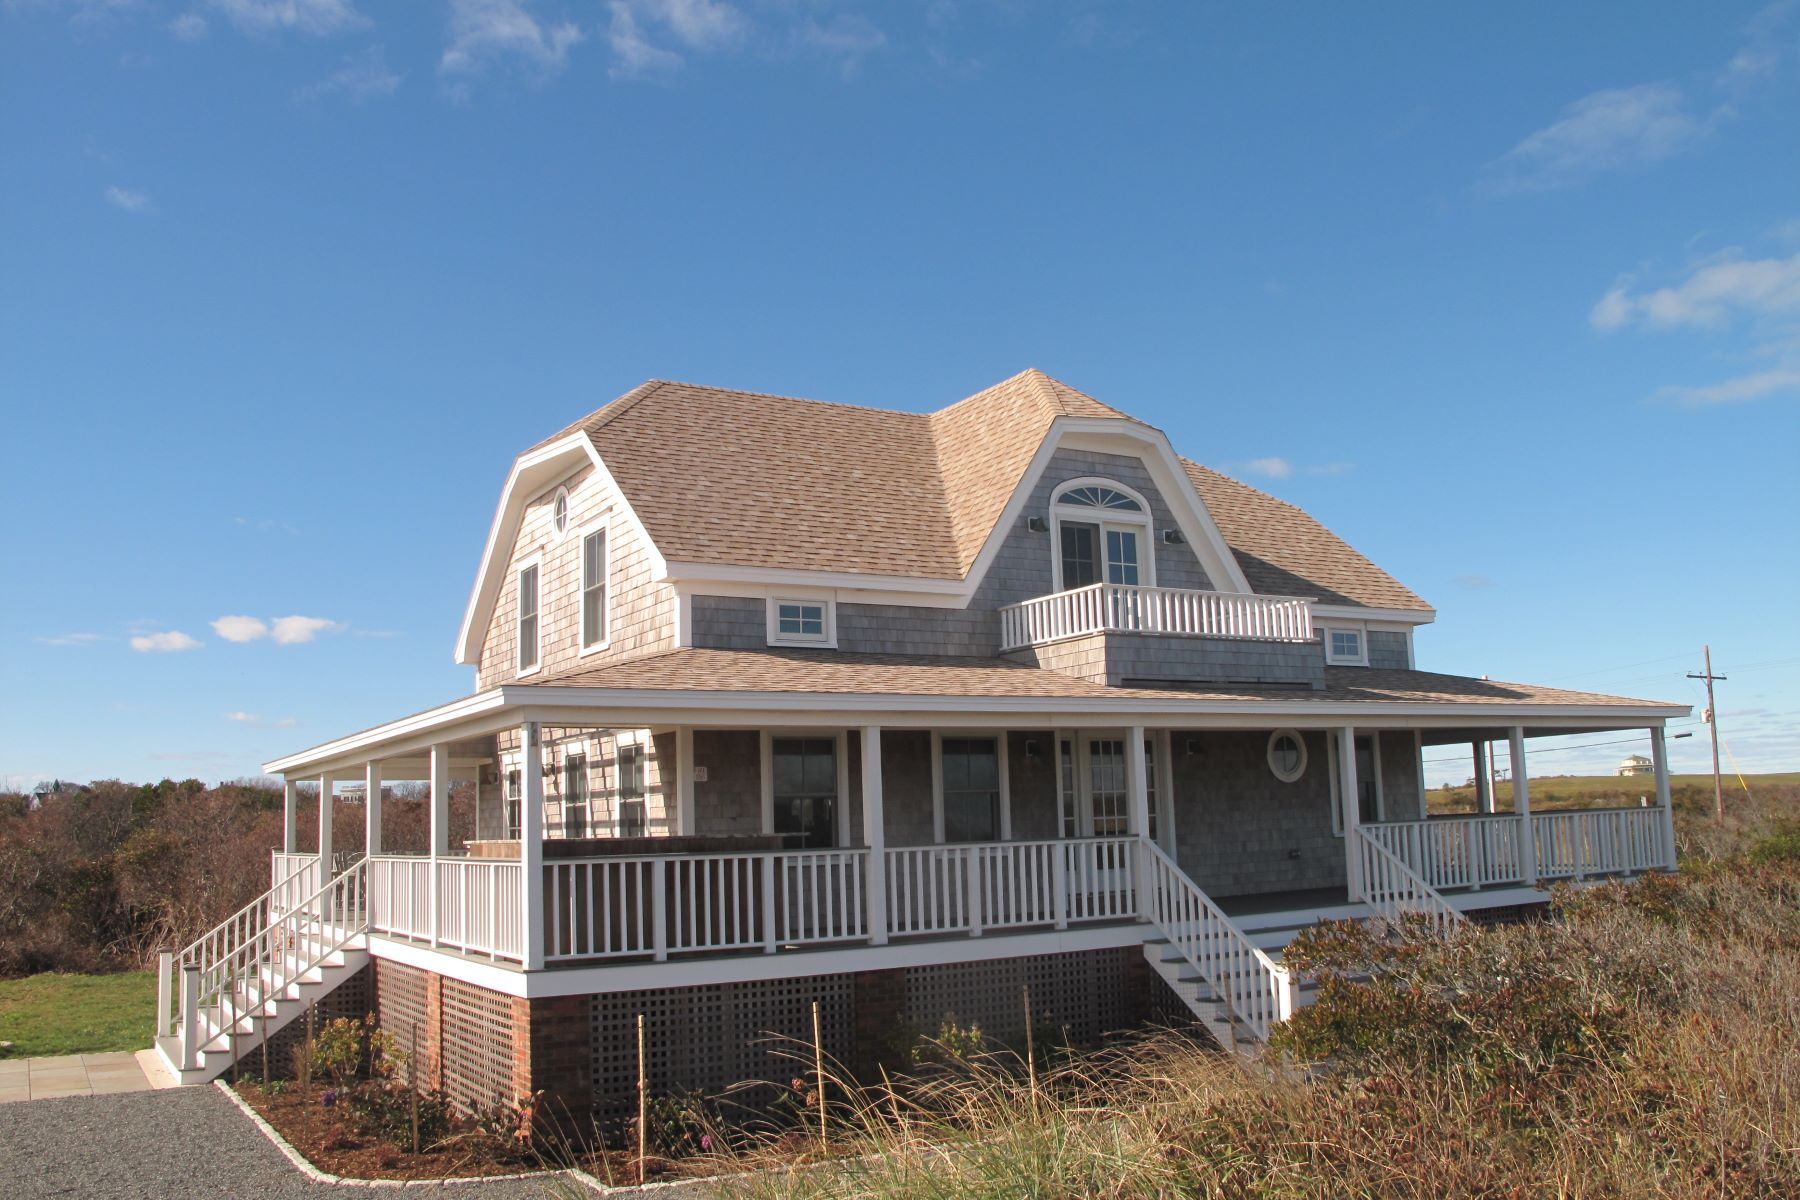 Single Family Home for Sale at Steps to the Beach 151 Corn Neck Road Block Island, Rhode Island 02807 United States